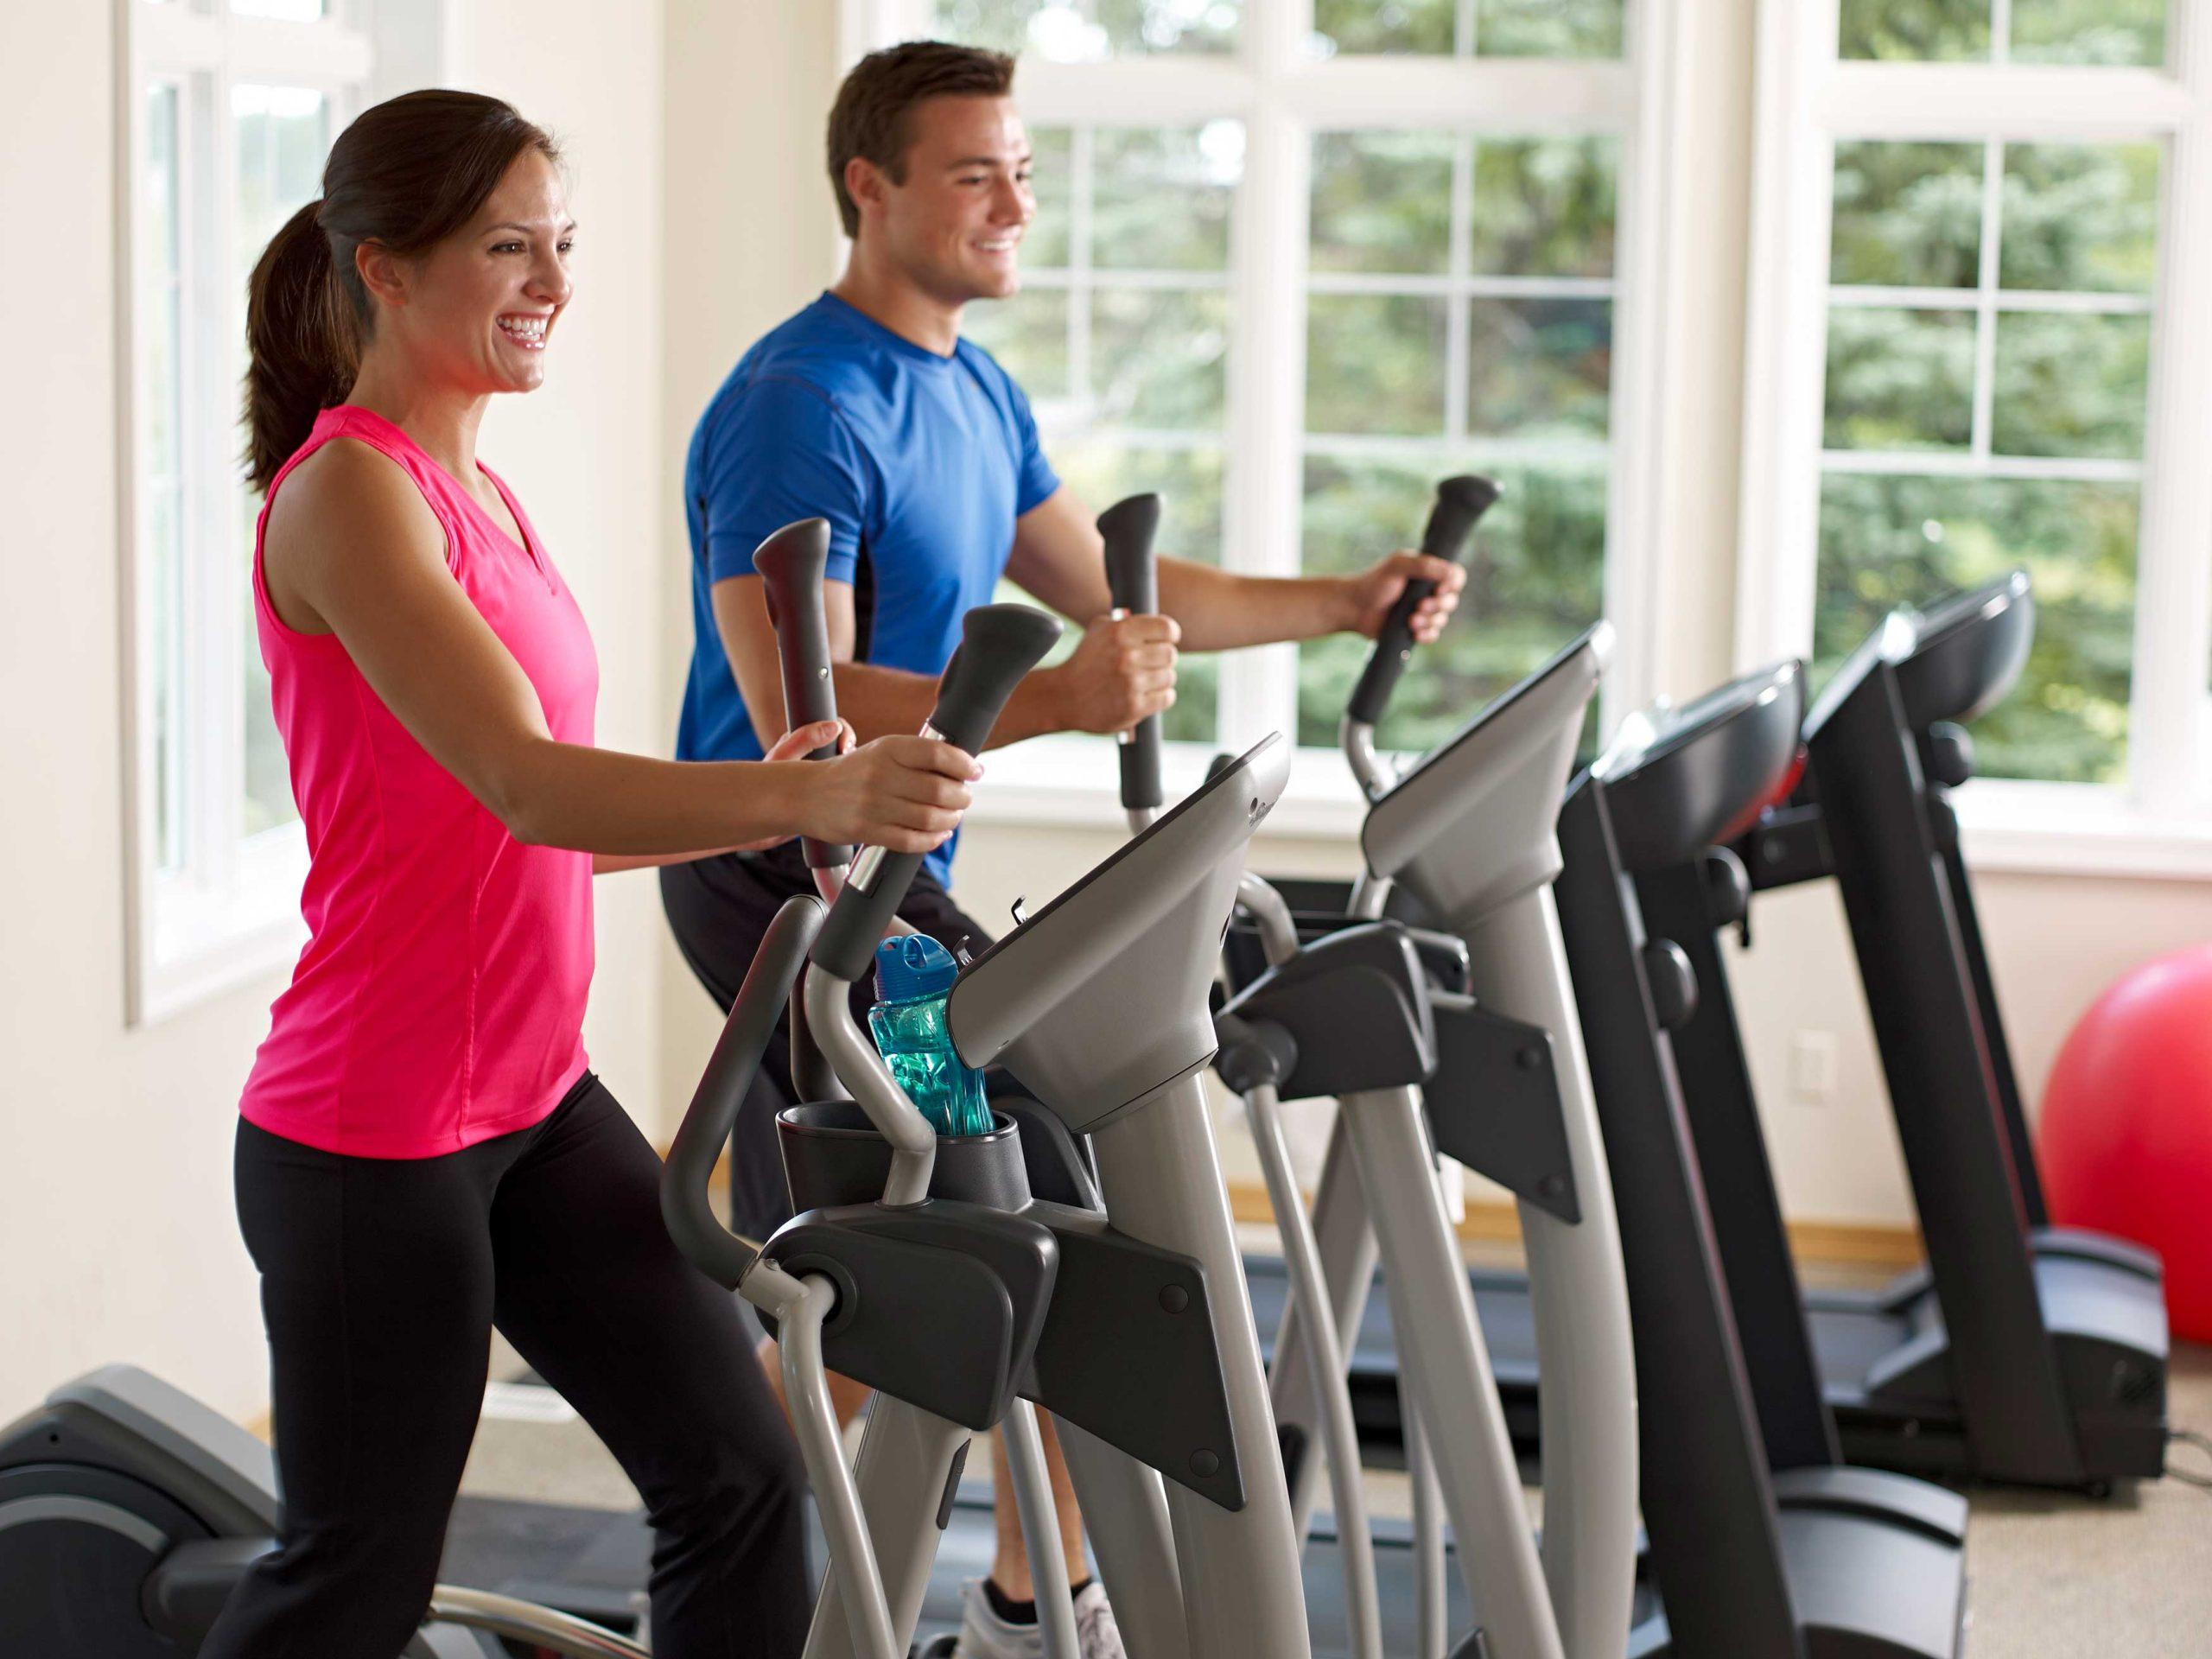 Apartments with fitness centers in Northeast Wisconsin